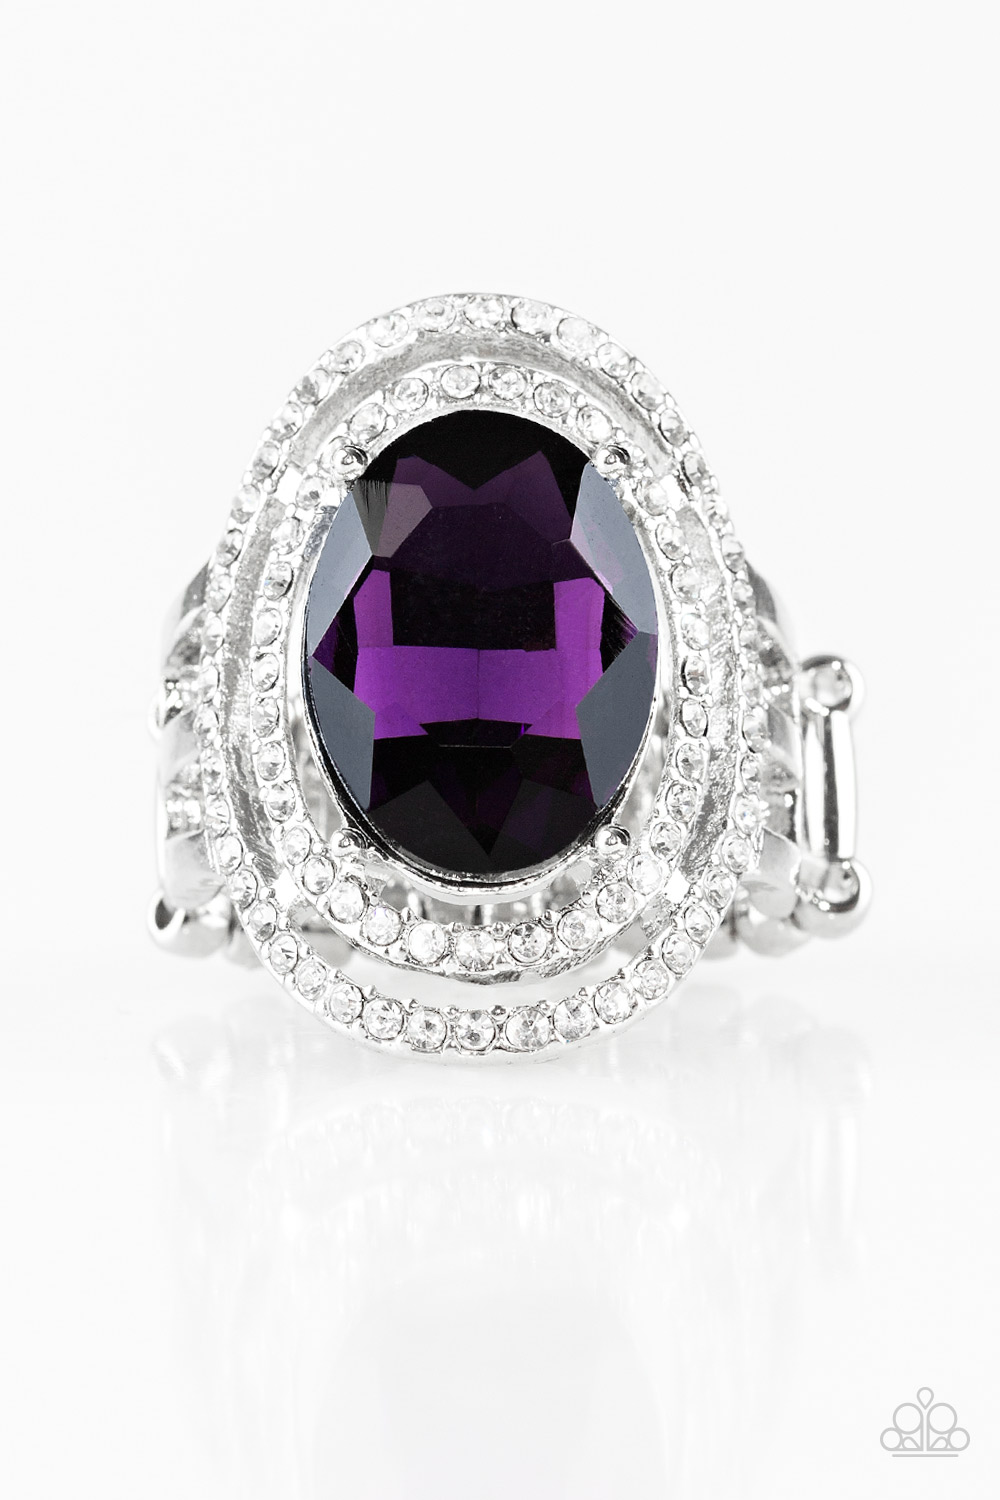 Purple Gem Ring $5 www.my-bling.com